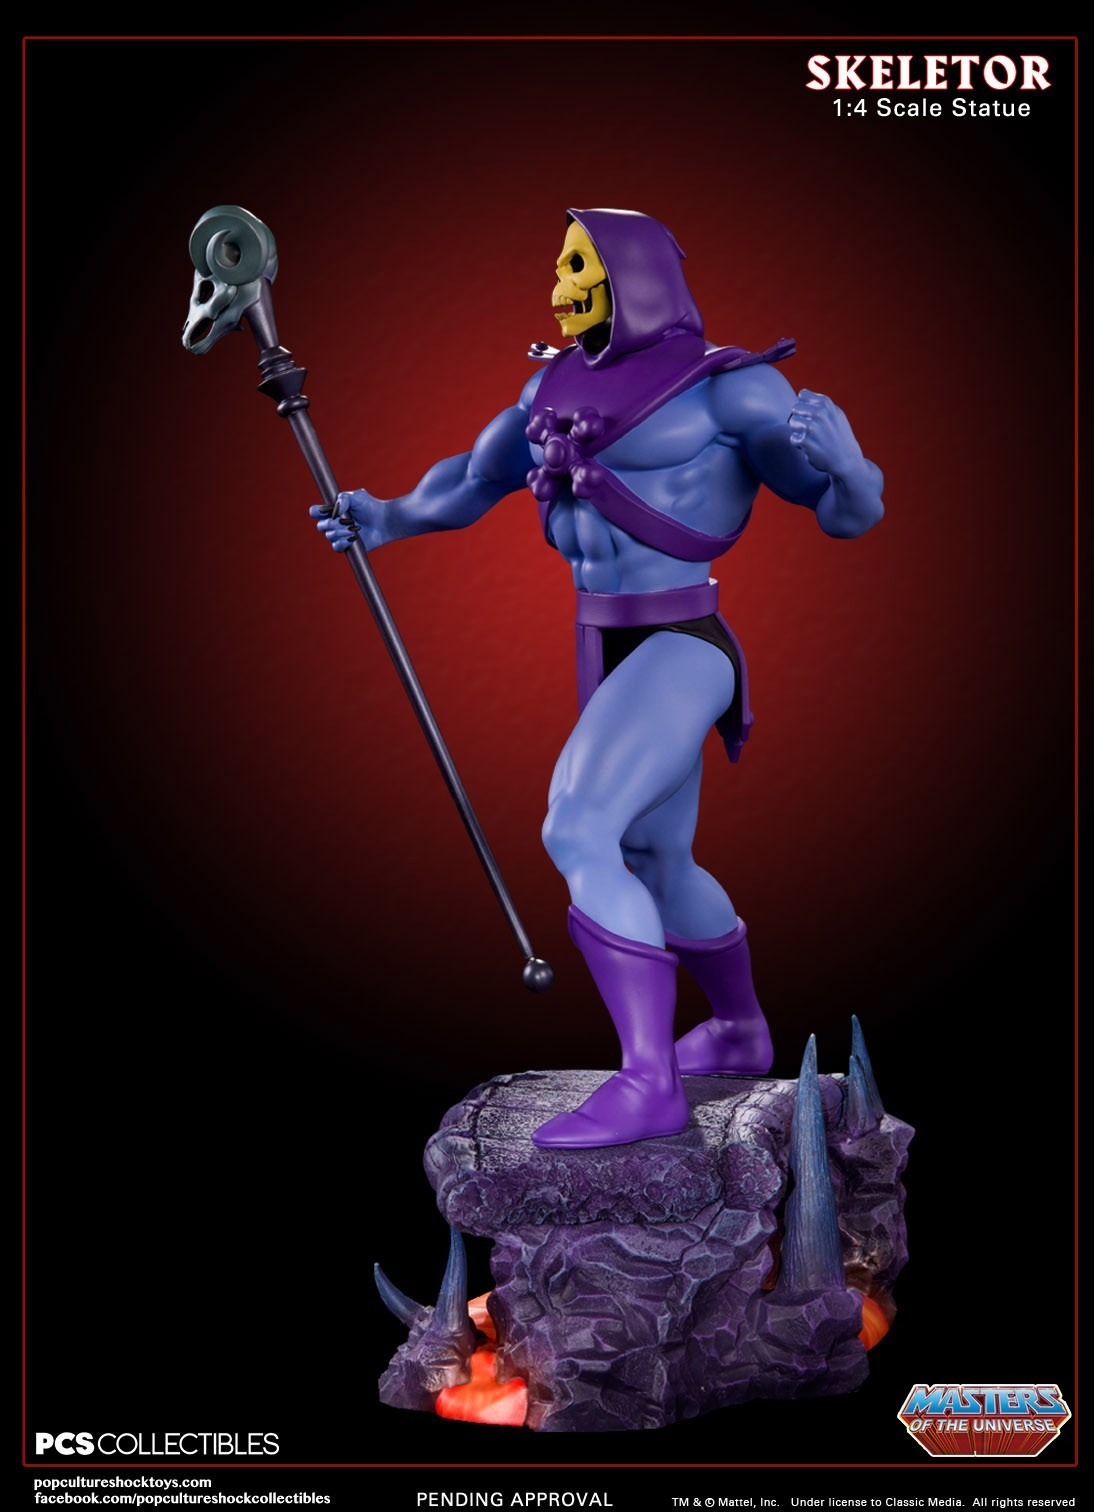 Alejandro pereira skeletor media i 1